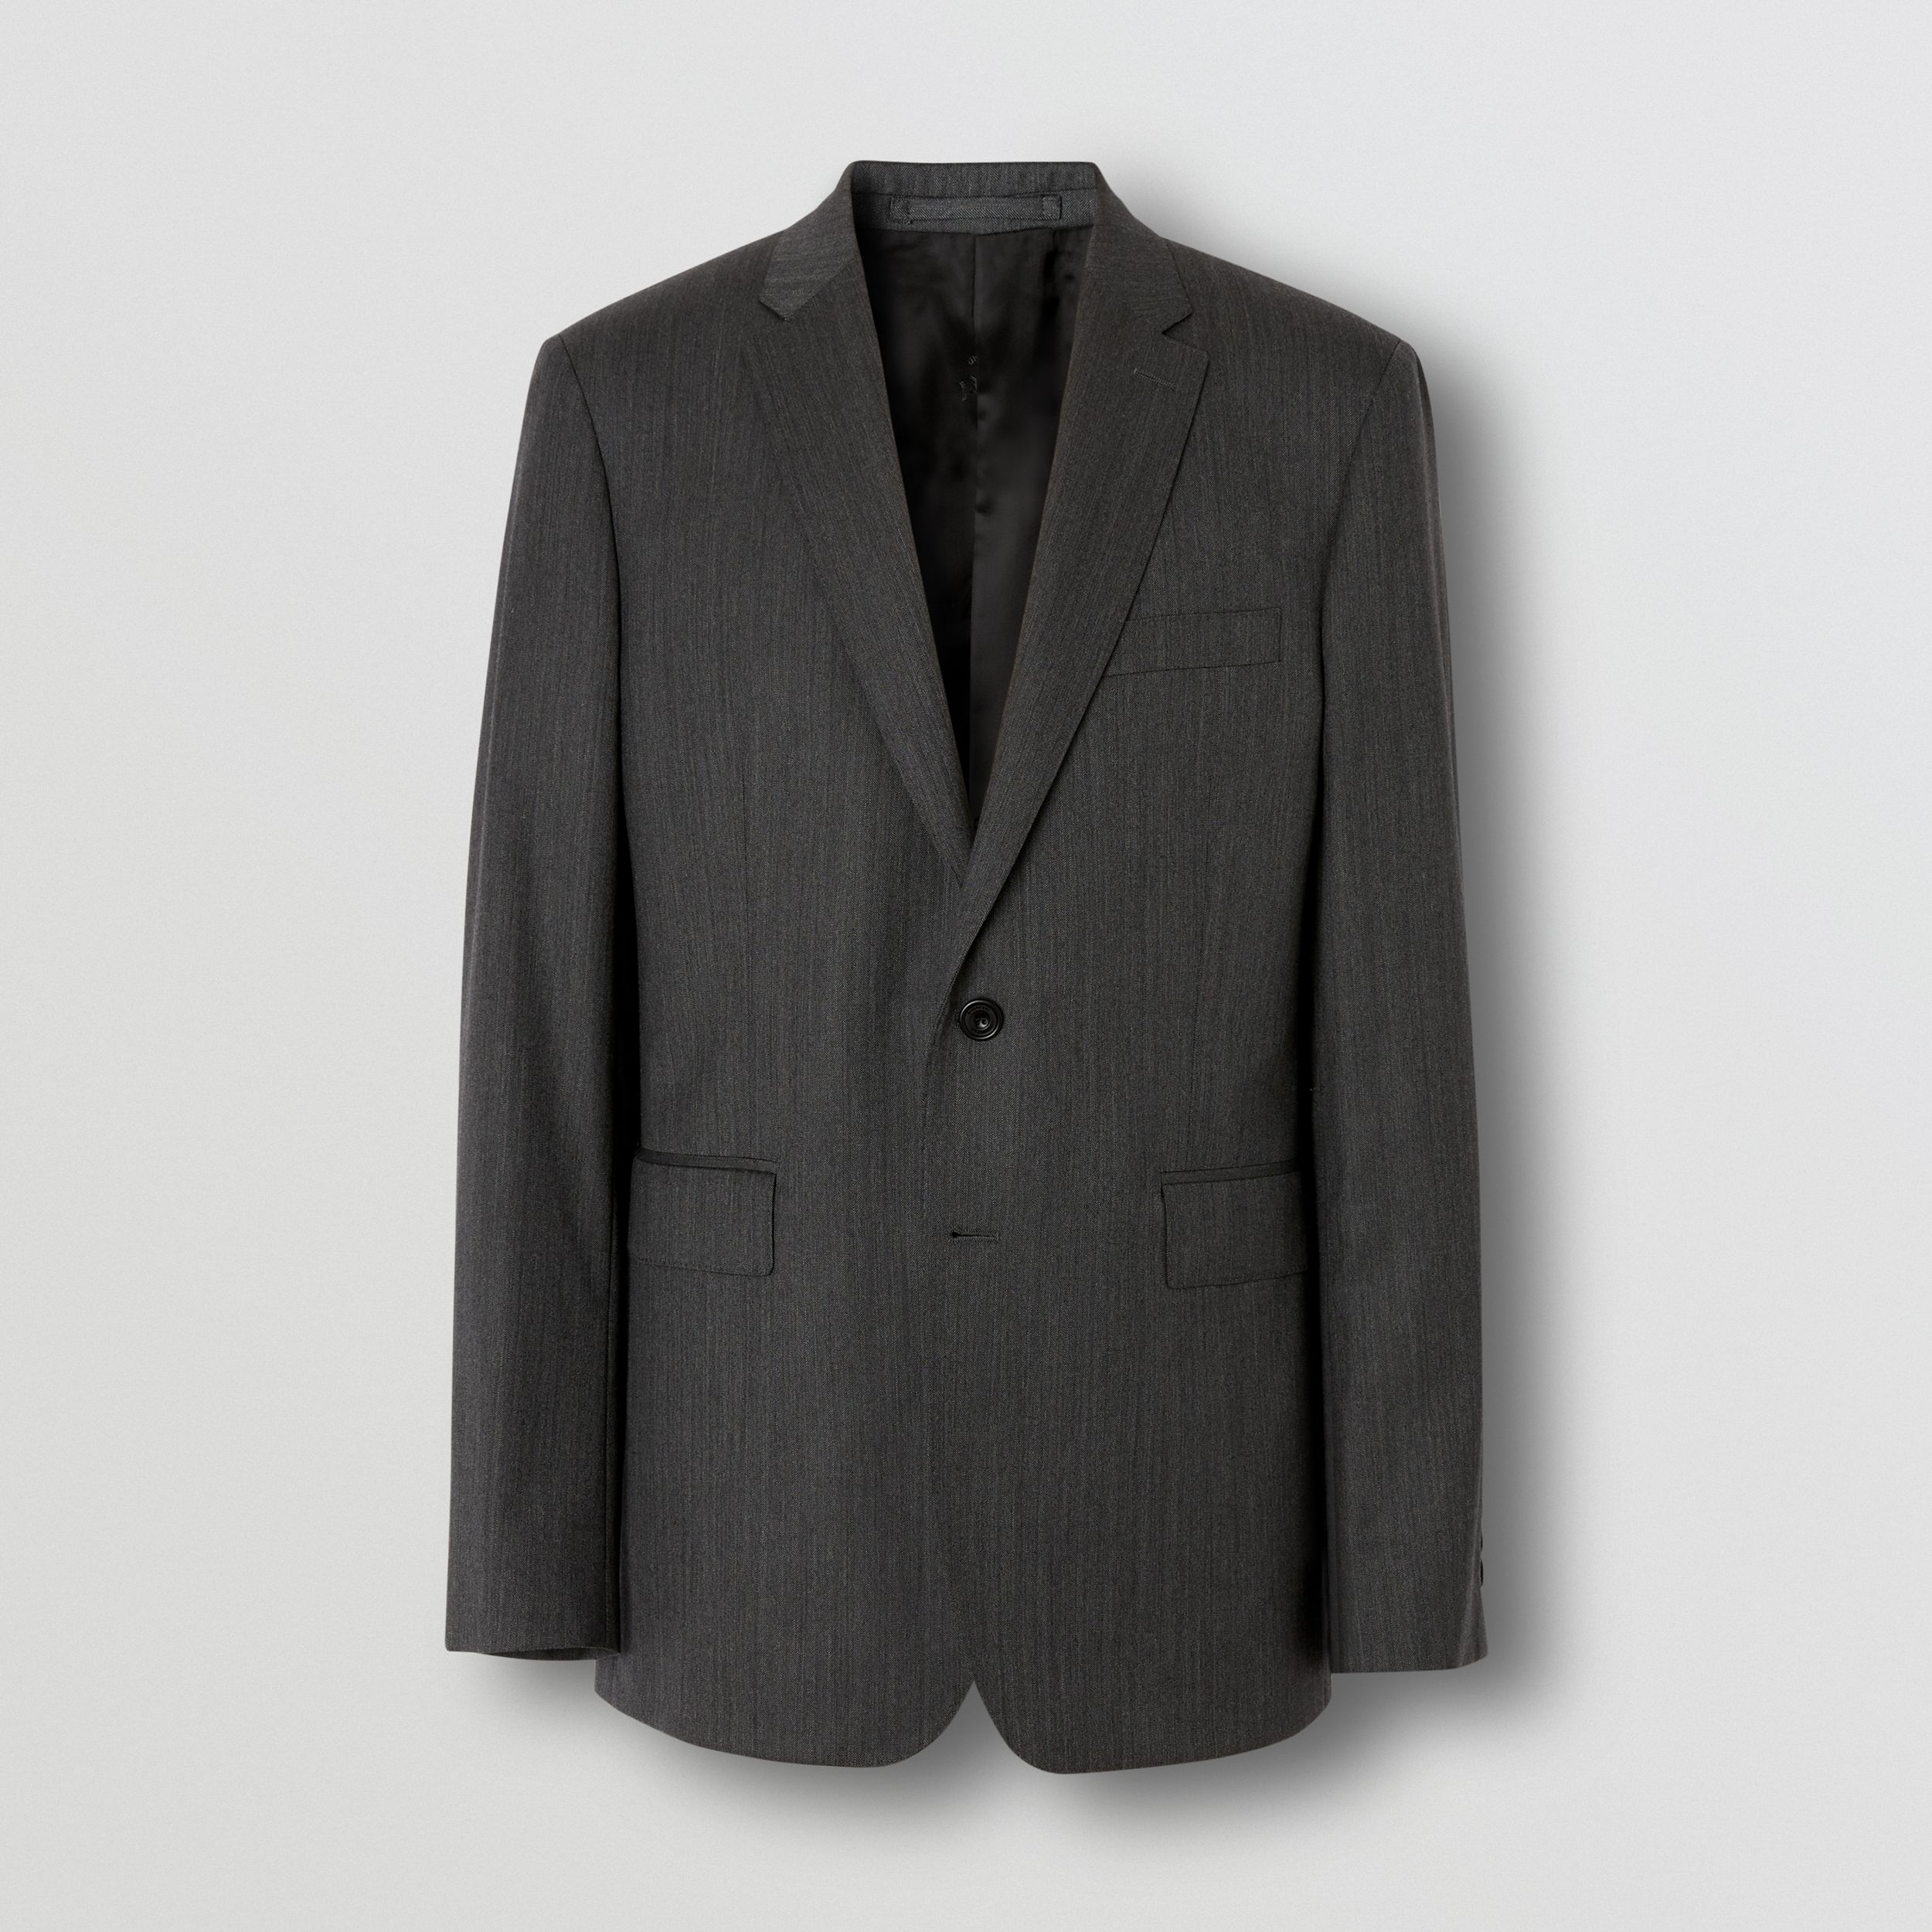 Slim Fit Herringbone Wool Suit in Mid Grey - Men | Burberry - 4